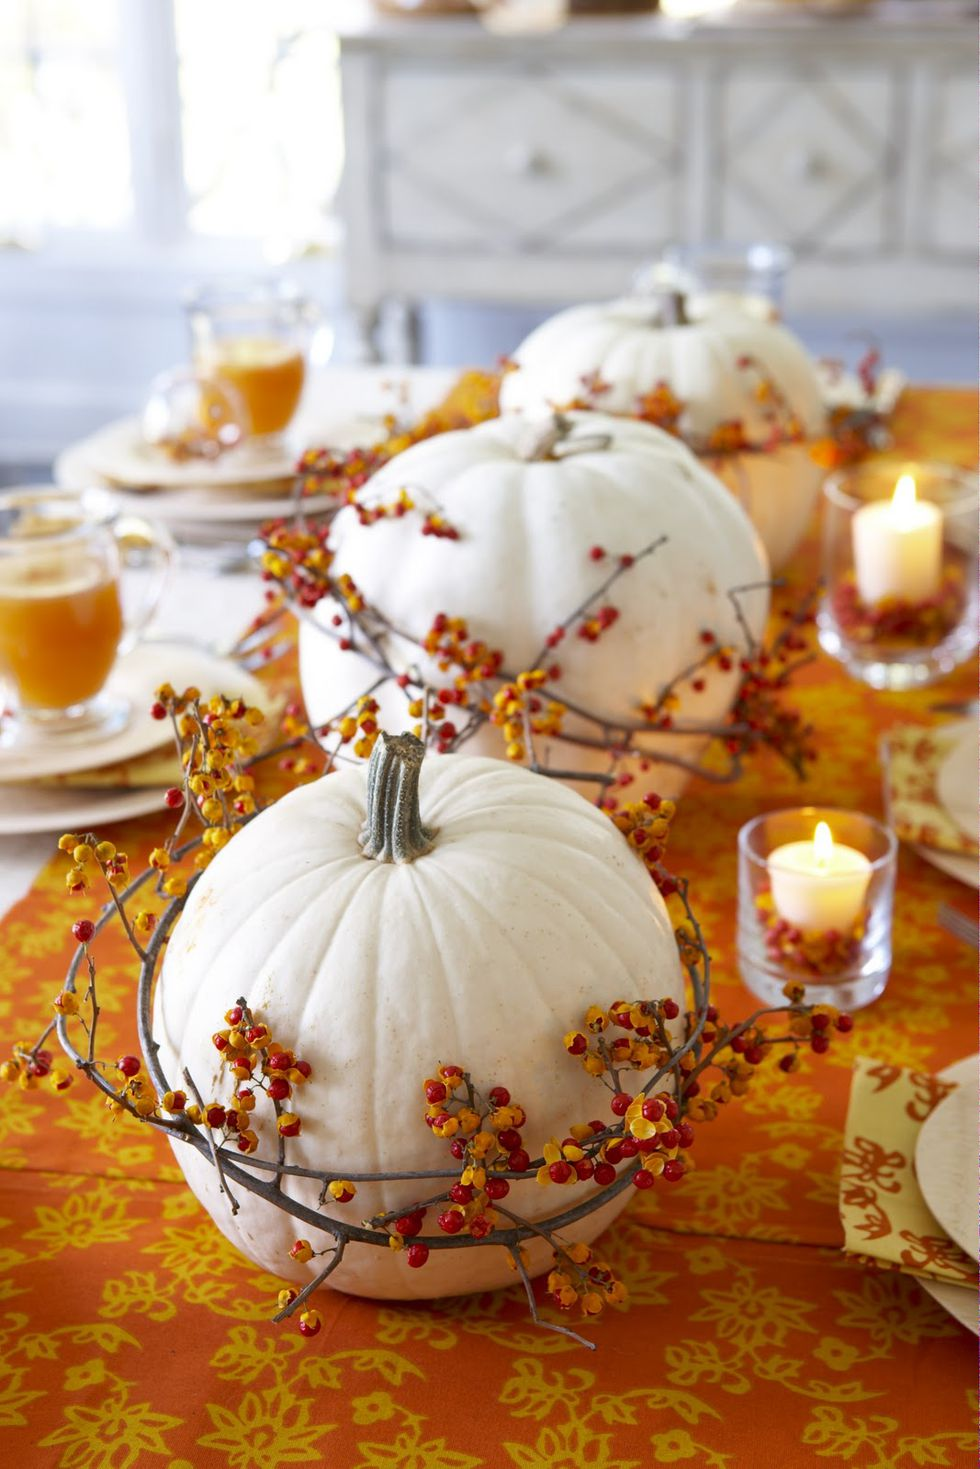 fall-centerpieces-white-pumpkin-berry-centerpiece-1529617162 2.jpg